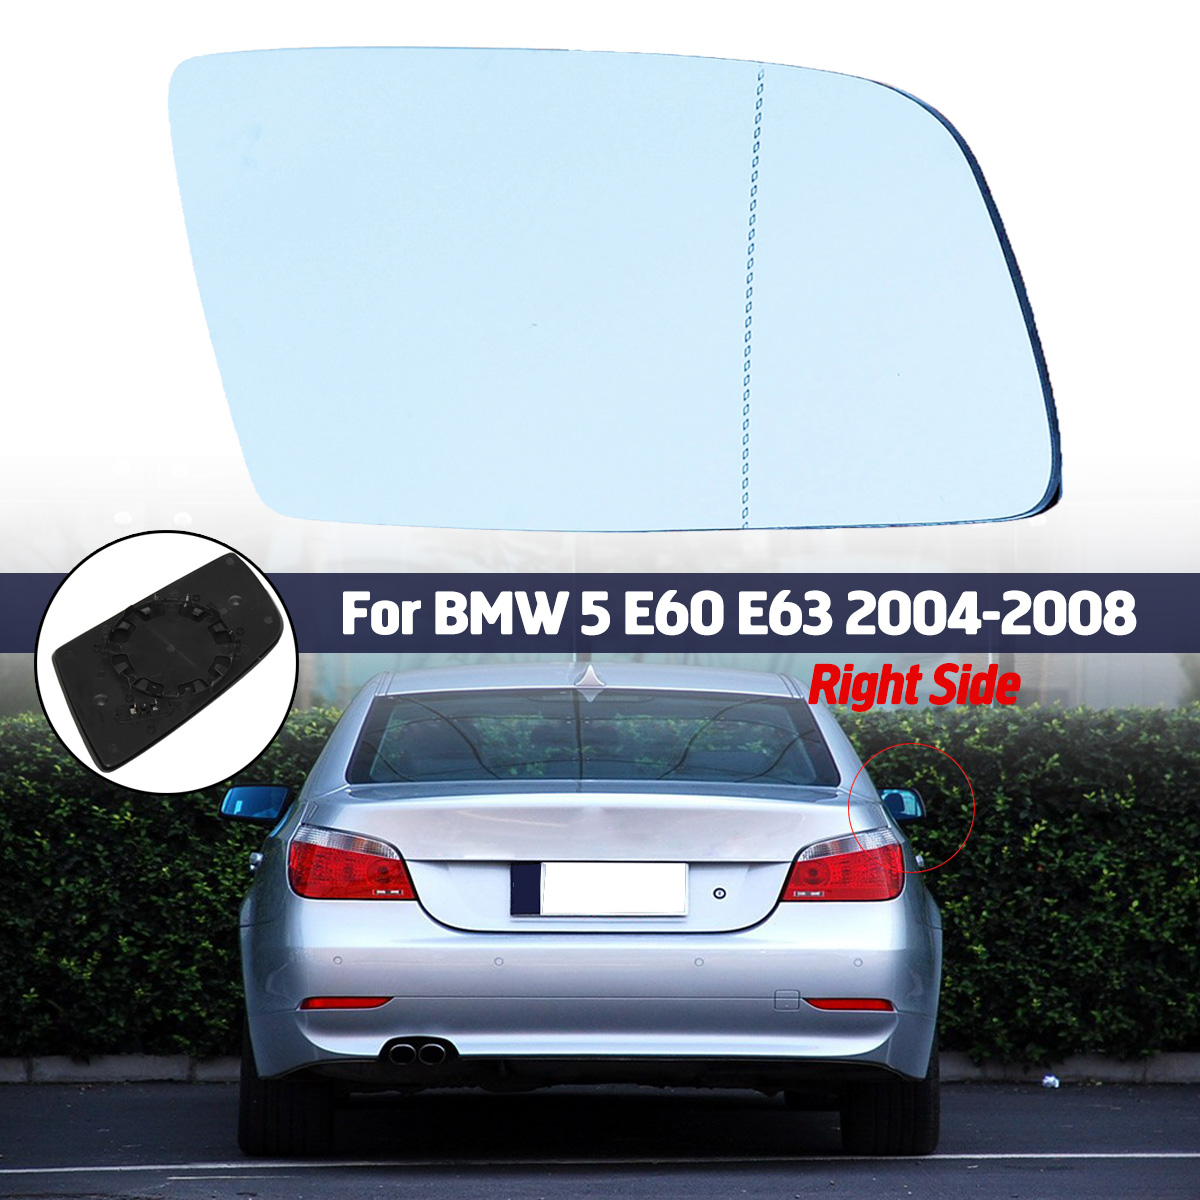 HEATED Mirror Glass with BACKING PLATE for MERCEDES-BENZ C CL E GLK S CLASS Passenger Side View Right RH